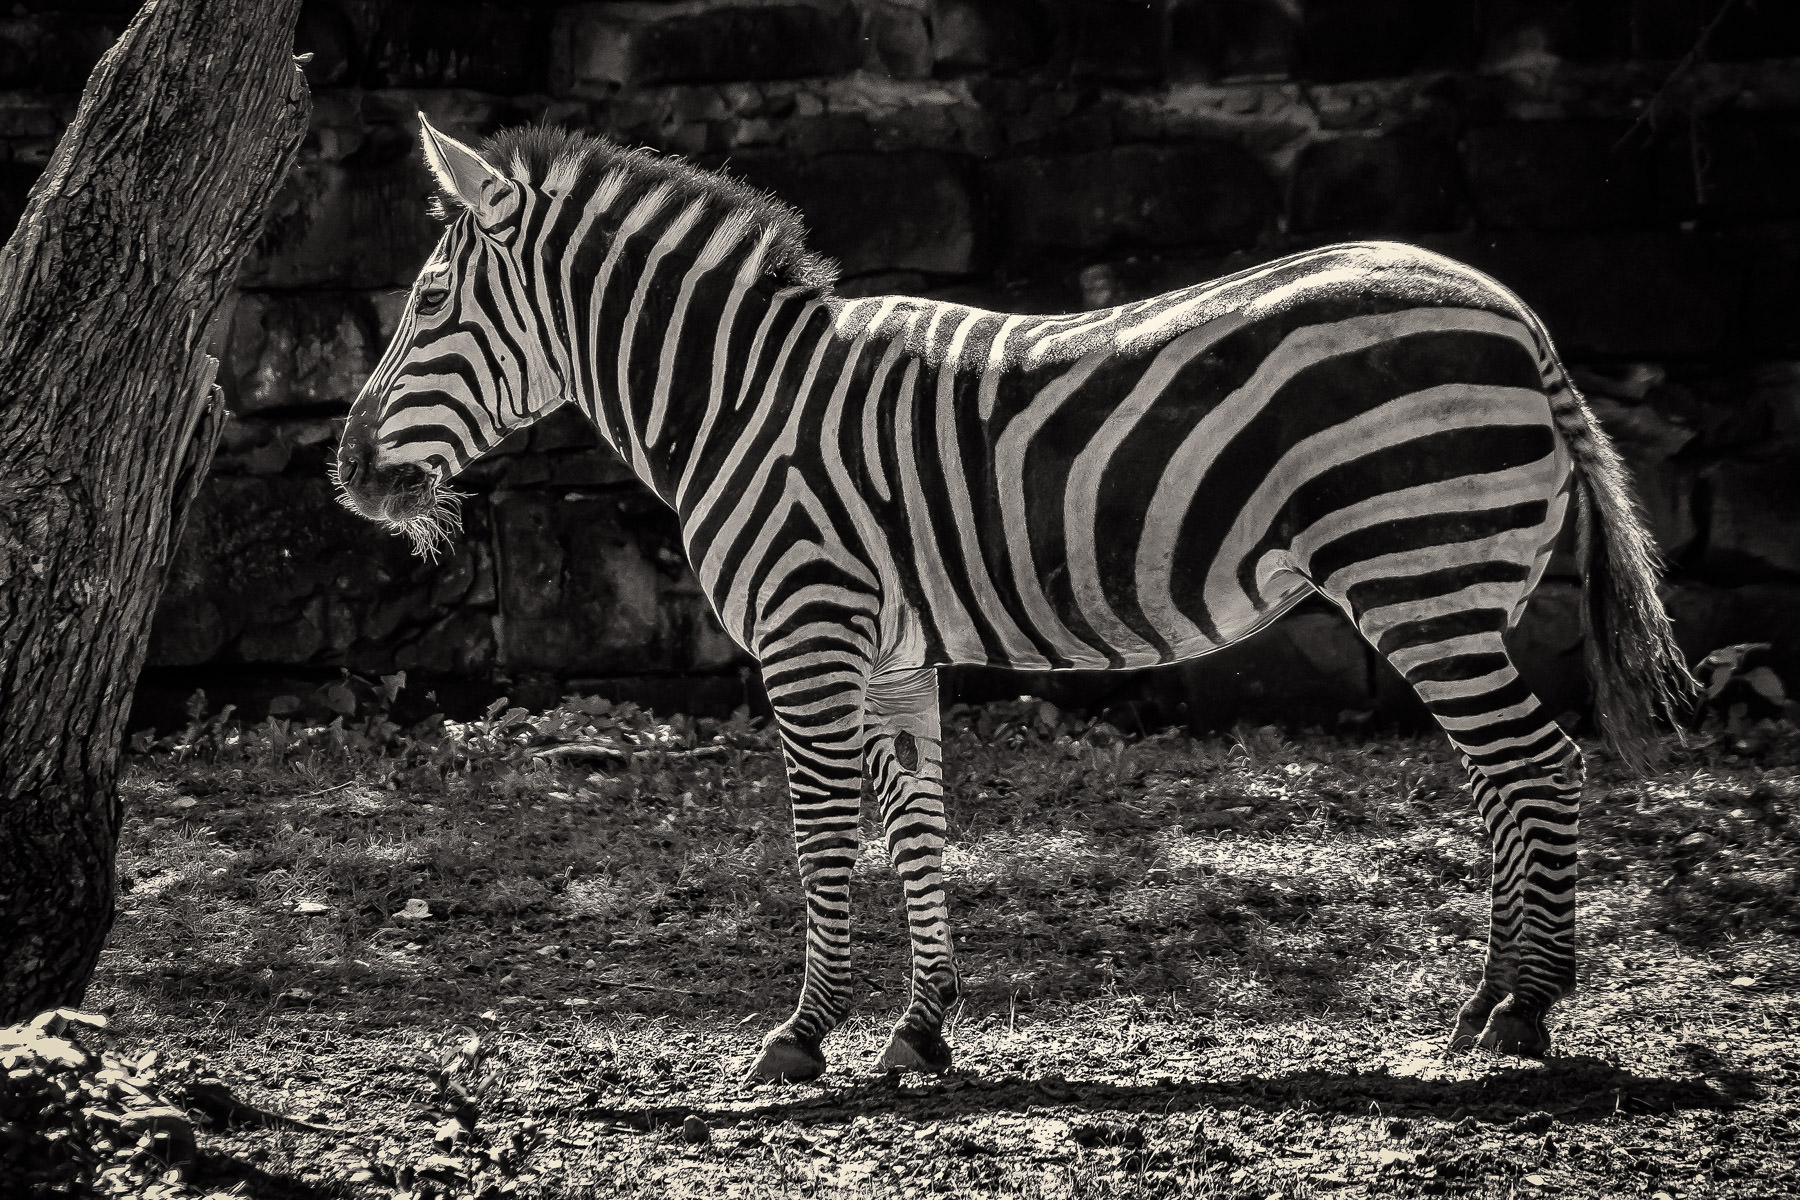 A zebra shows its stripes at the Fort Worth Zoo.